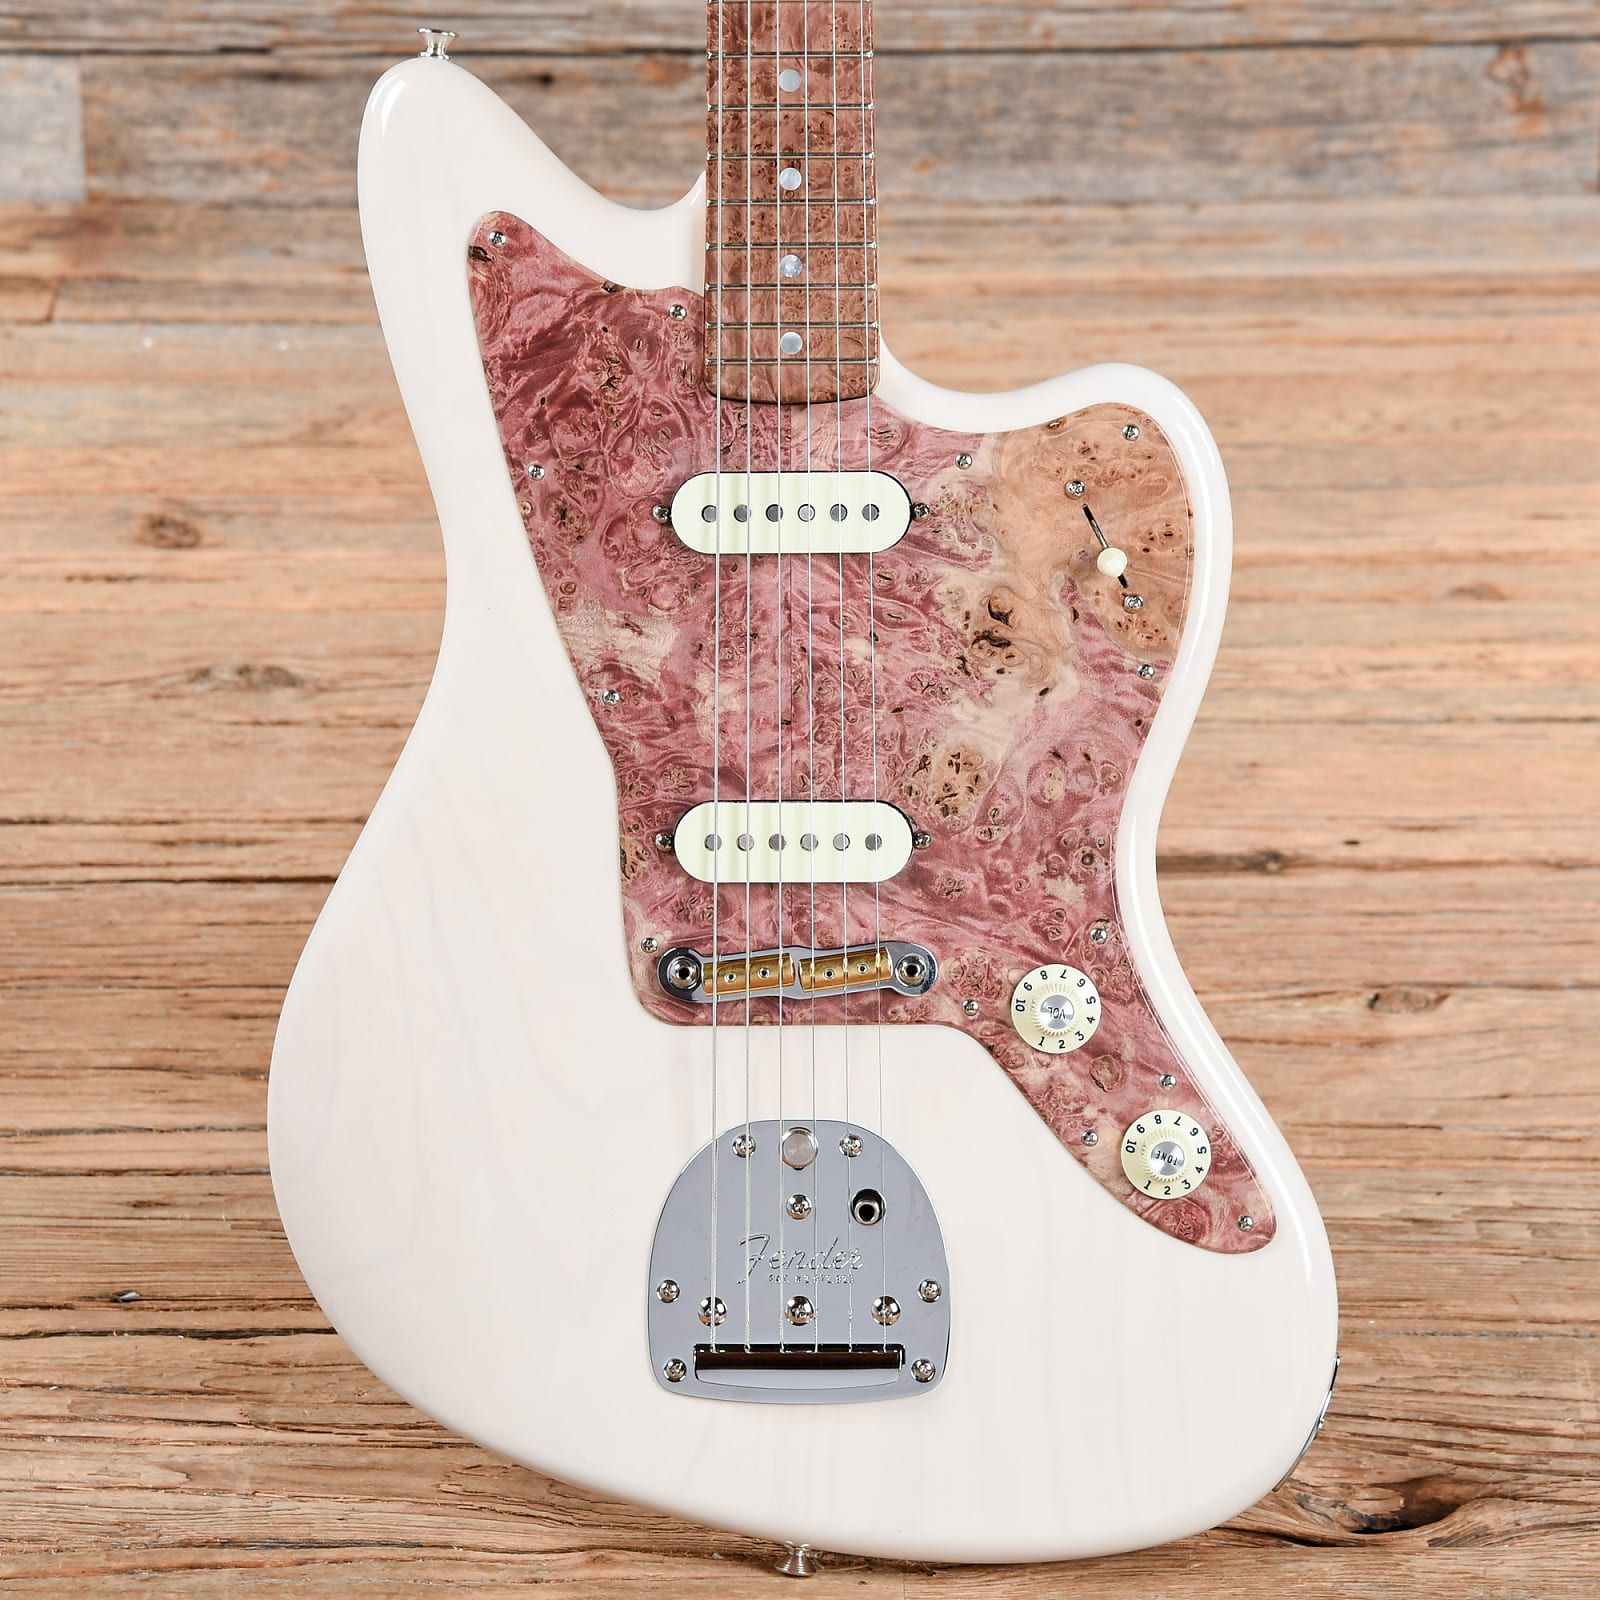 Fender Custom Shop Founders Design George Blanda Jazzmaster White Blonde (Serial #GB1376) USED #electricguitars